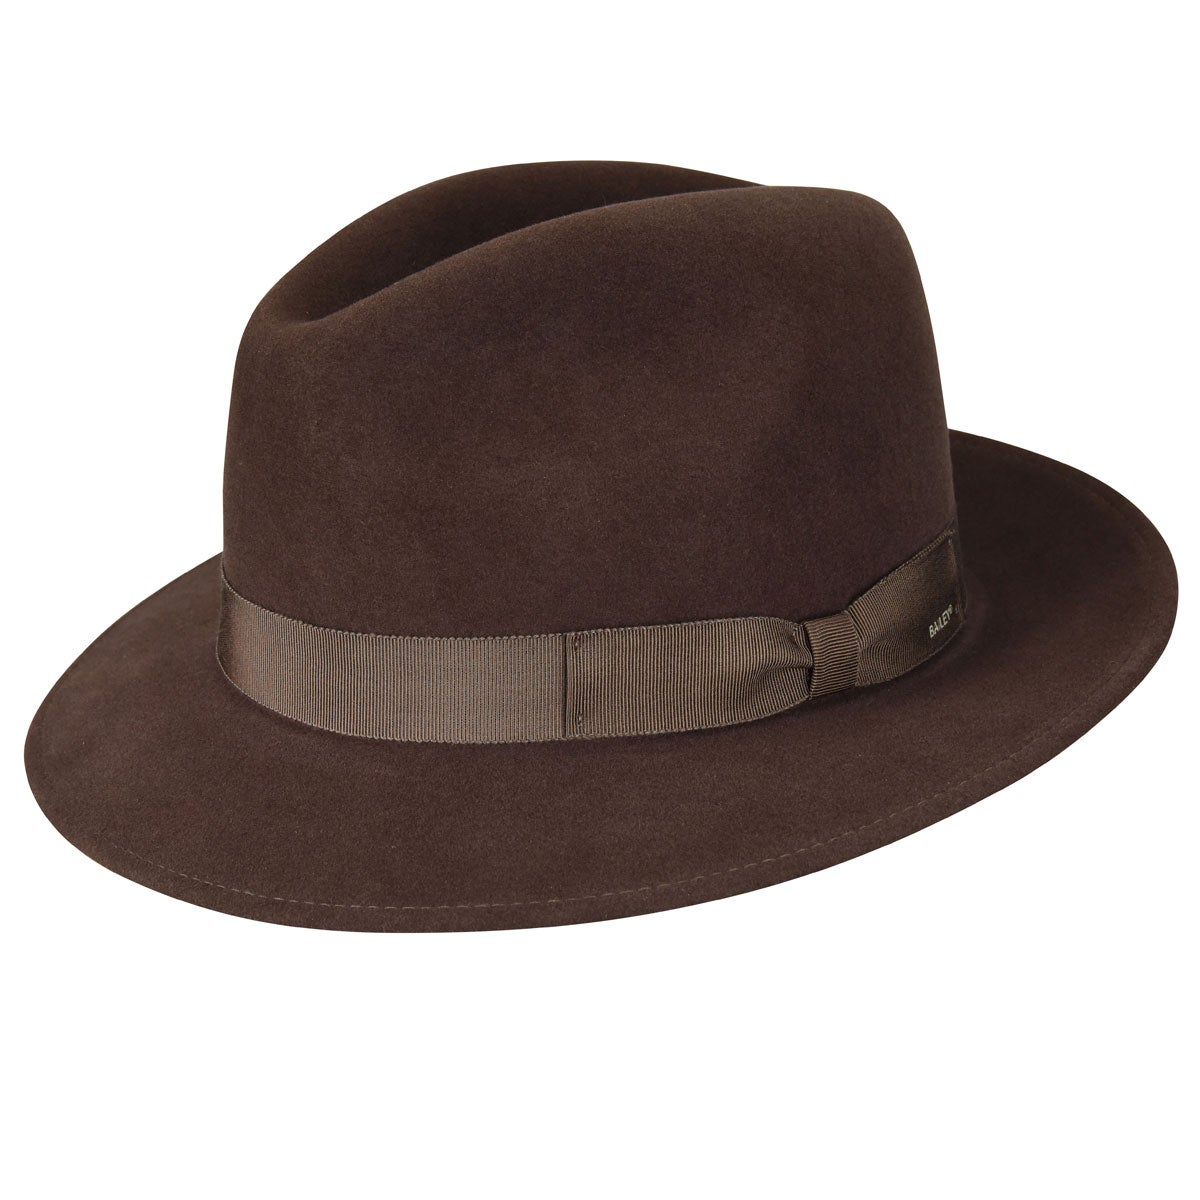 Bailey of Hollywood Winters Fedora in Saddle